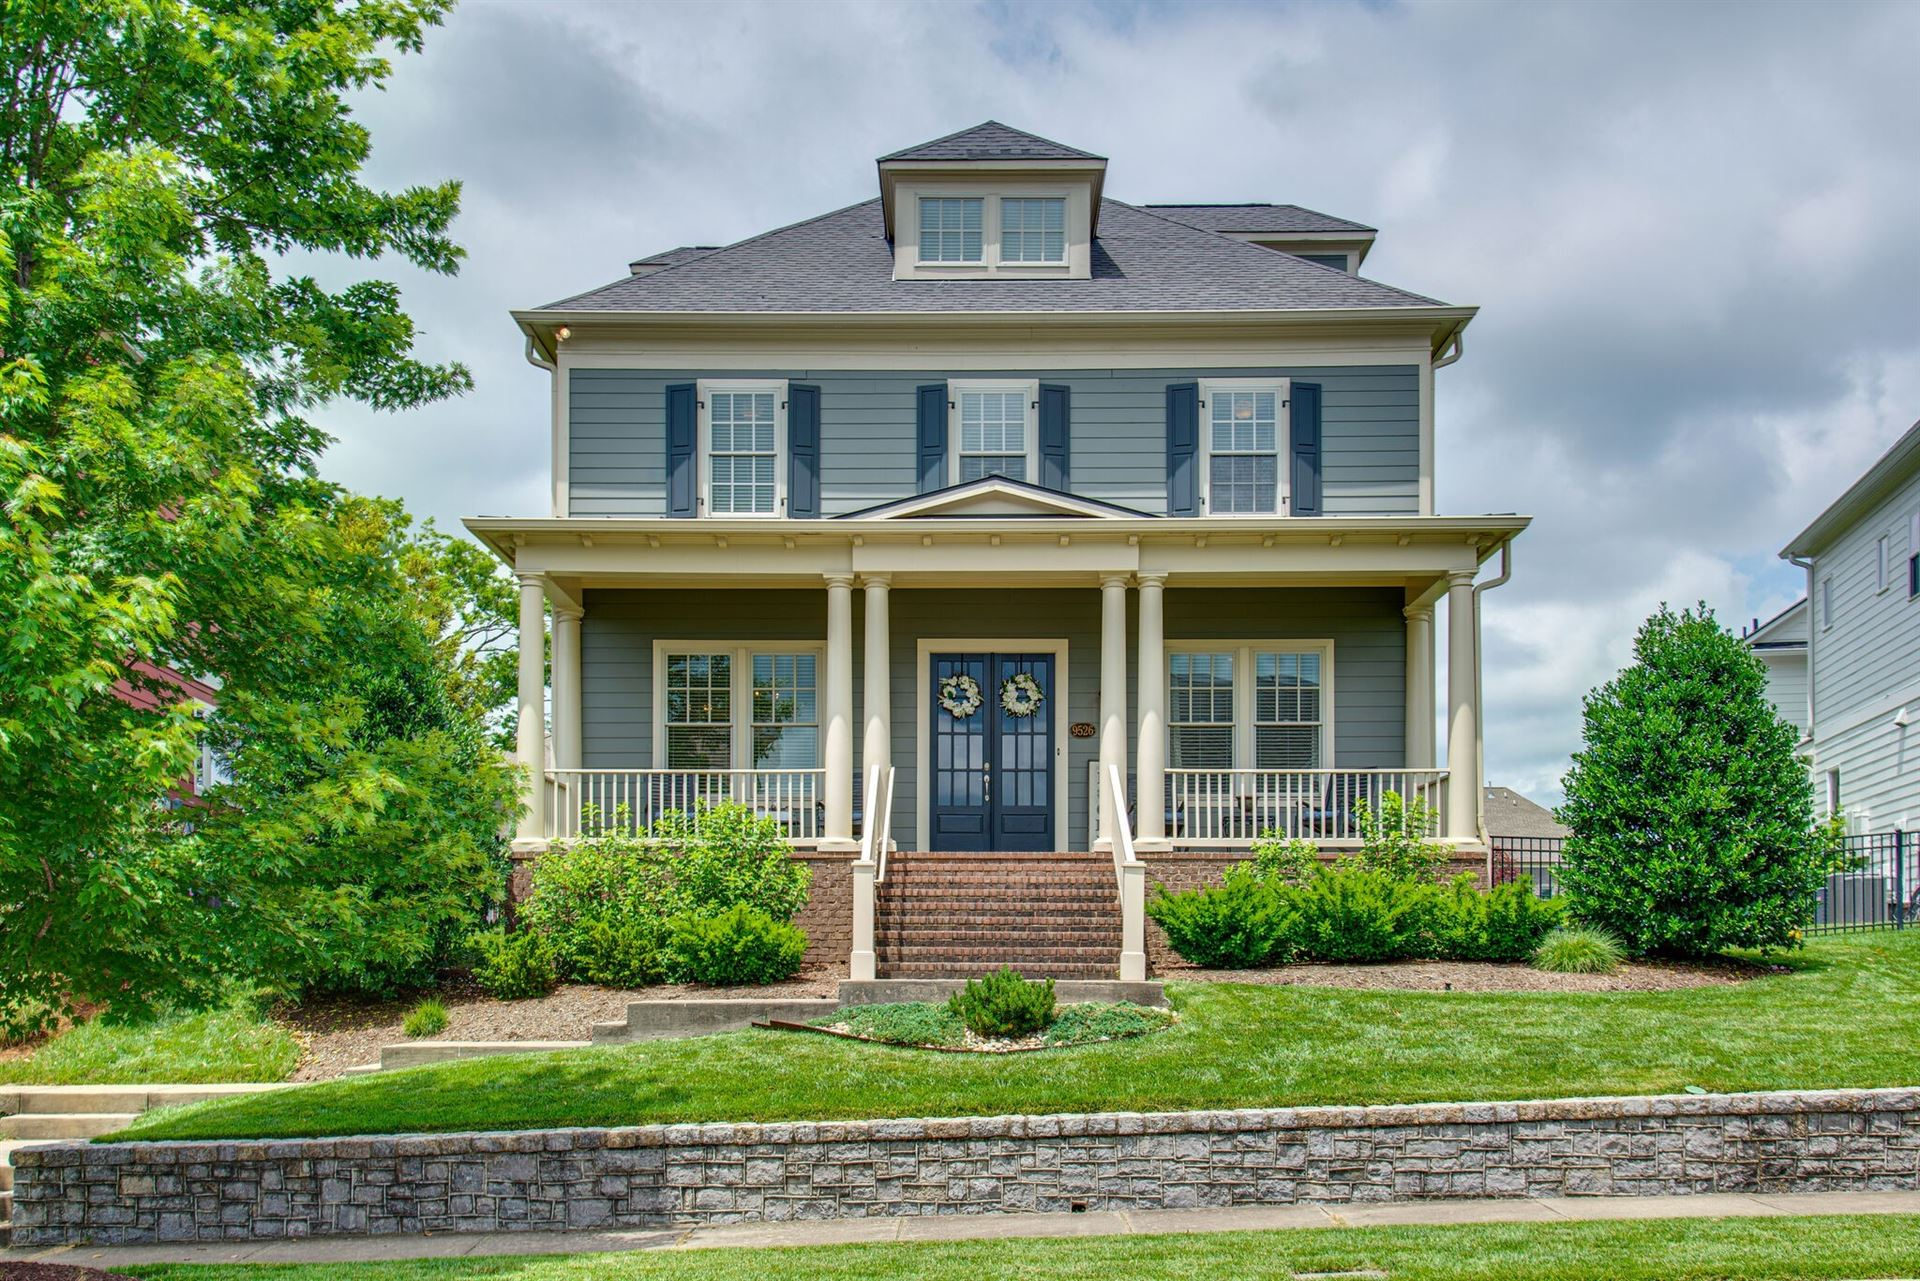 9526 Wexcroft Dr, Brentwood, TN 37027 - MLS#: 2264924